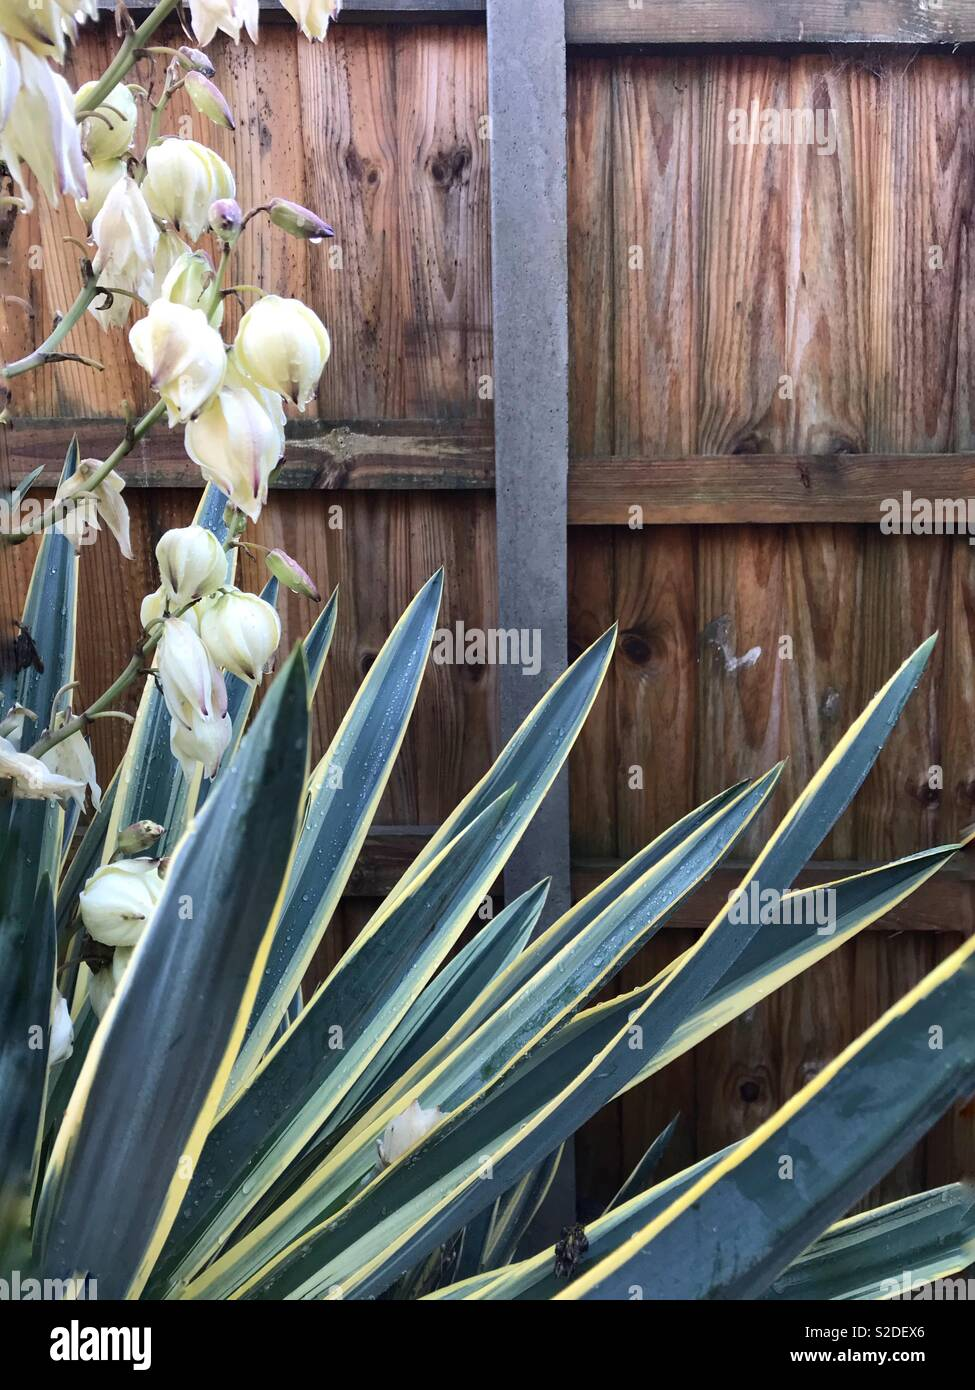 Flowering cordyline yucca with wooden fence and concrete post Stock Photo